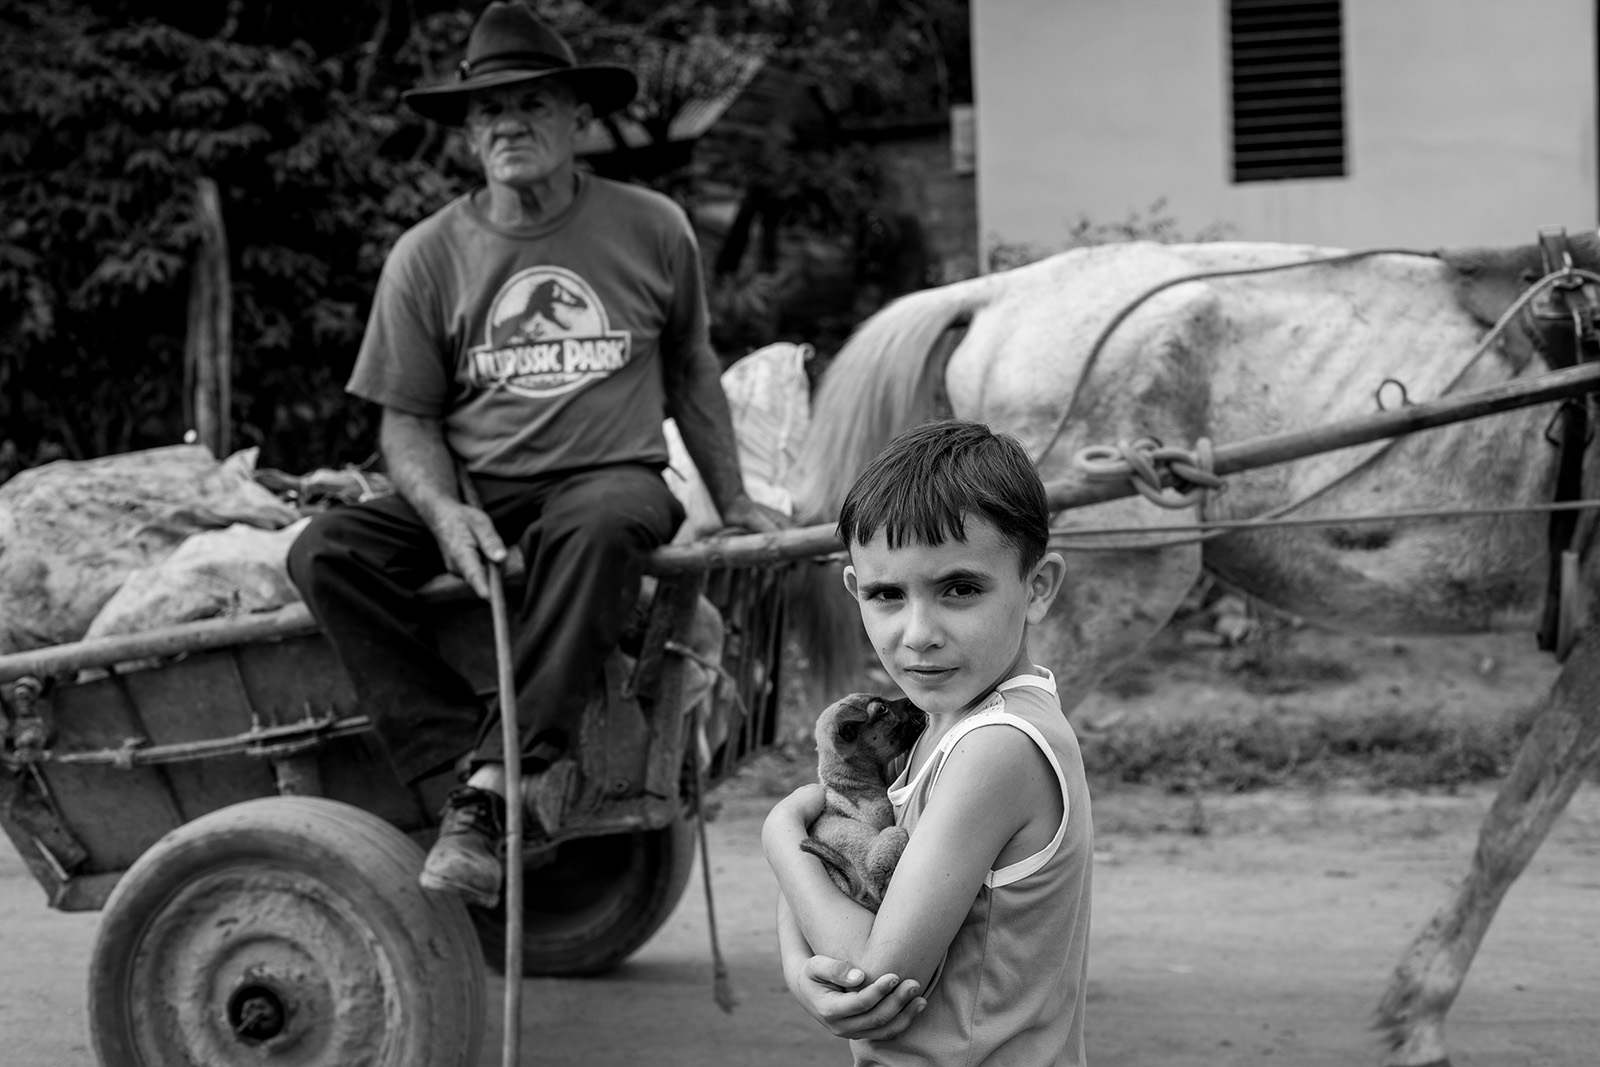 Boy with puppy in Viñales Cuba